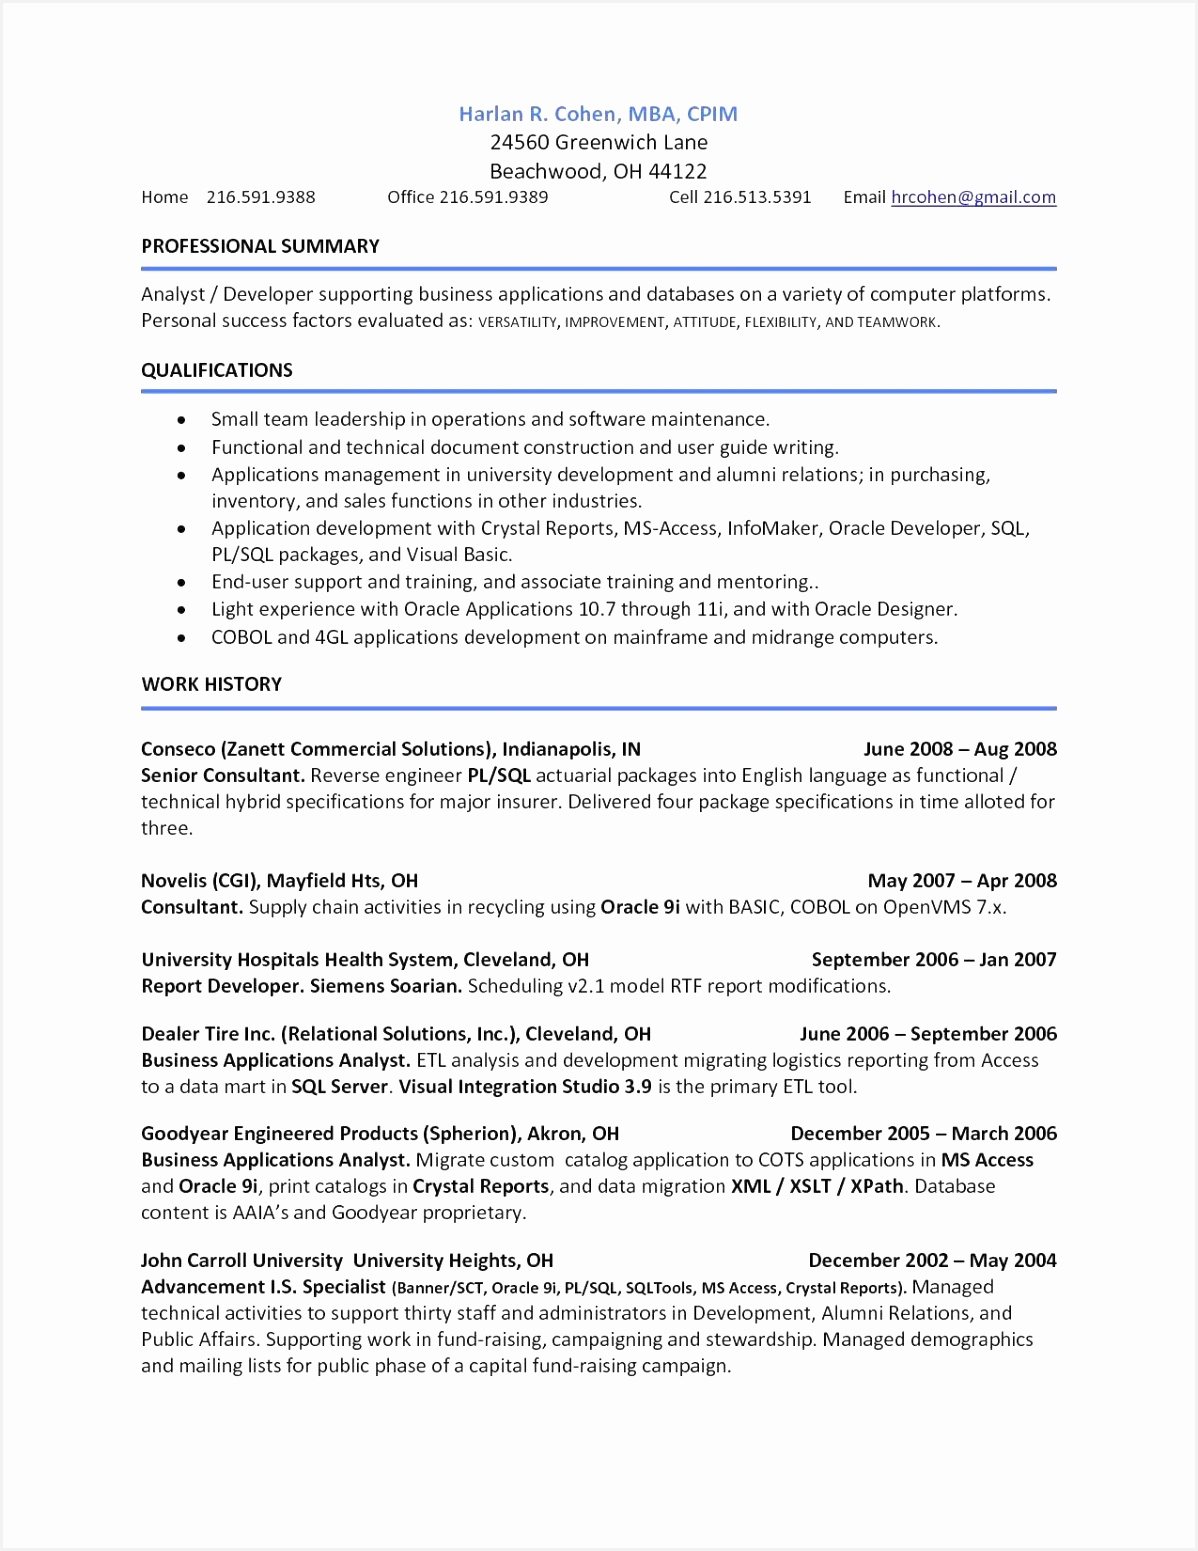 Functional Resume Sample Accounting Clerk Valid Dealer Resume Unique List Resume Skills New Resume Examples 0d 15511198loafi